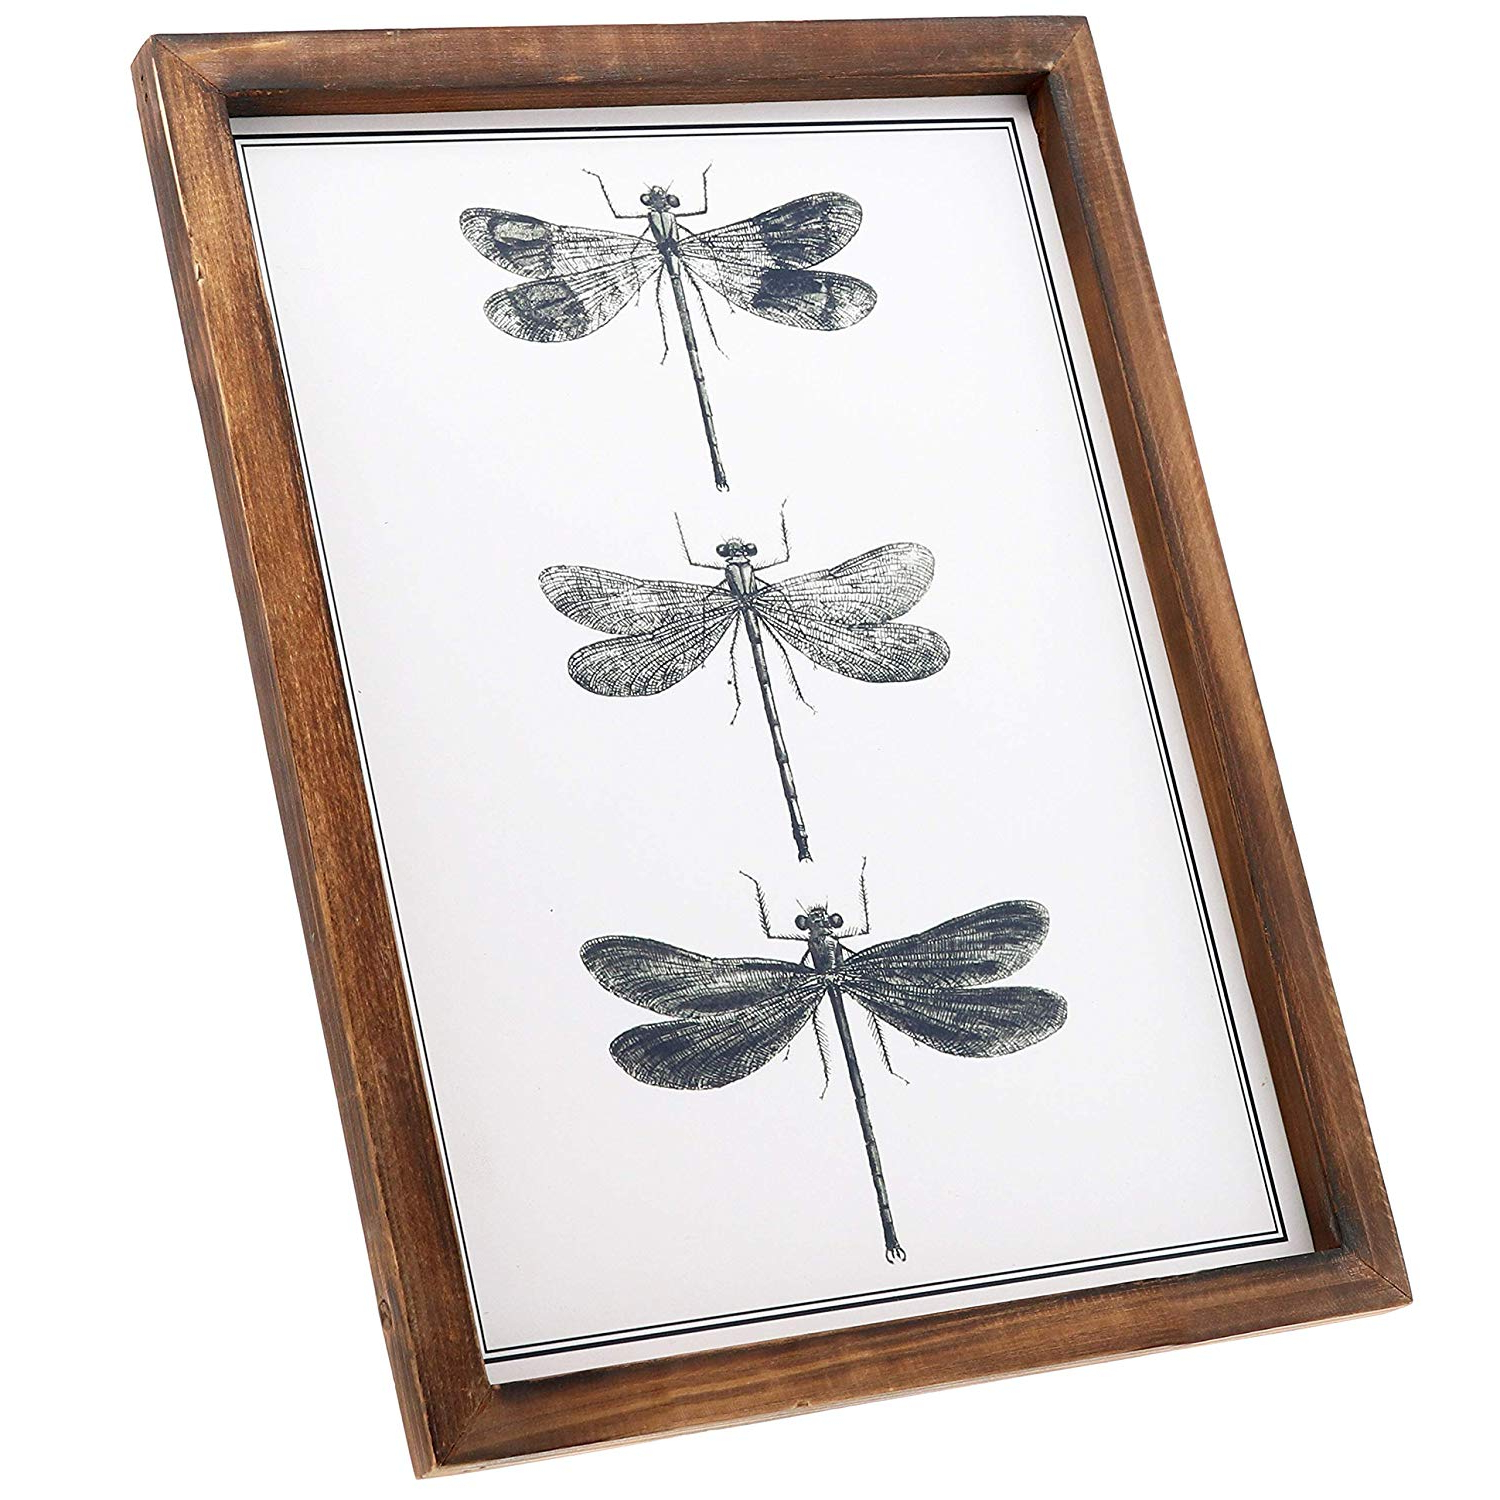 Preferred Dragonfly Wall Decor In Amazon: Barnyard Designs Dragonfly Wall Decor Wood Plaque Rustic (View 13 of 20)